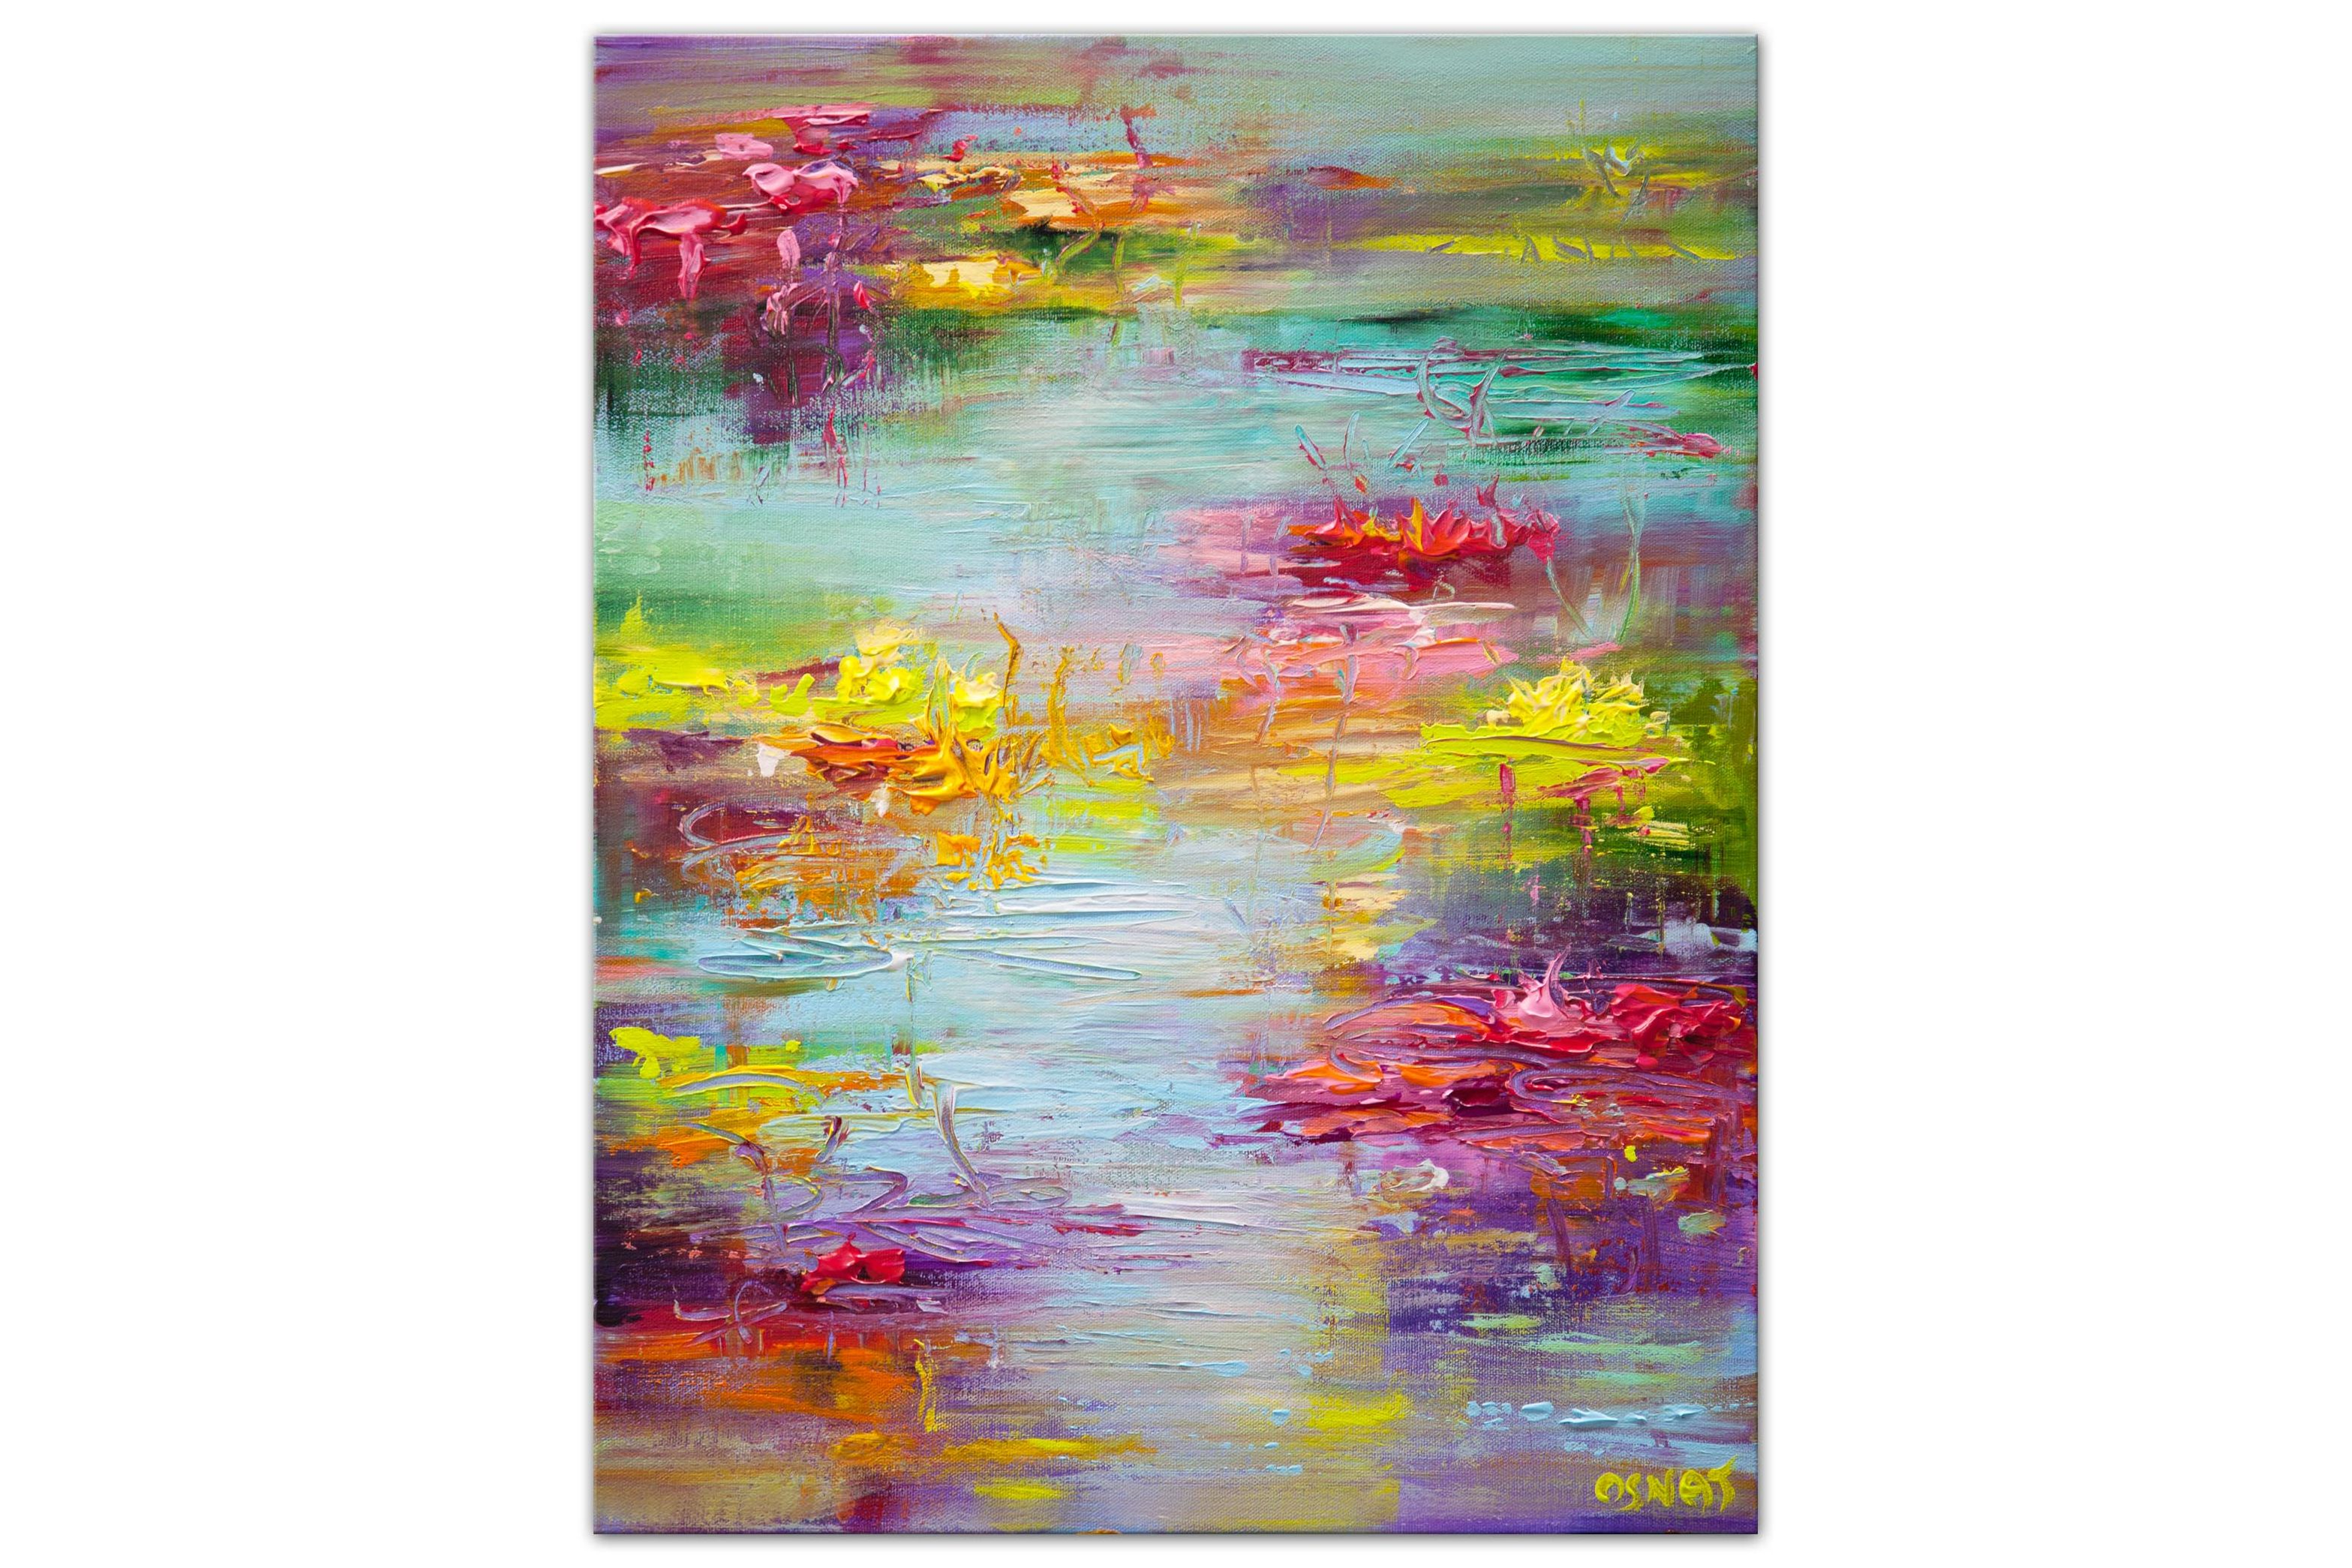 colorful modern pond with lily pads painting